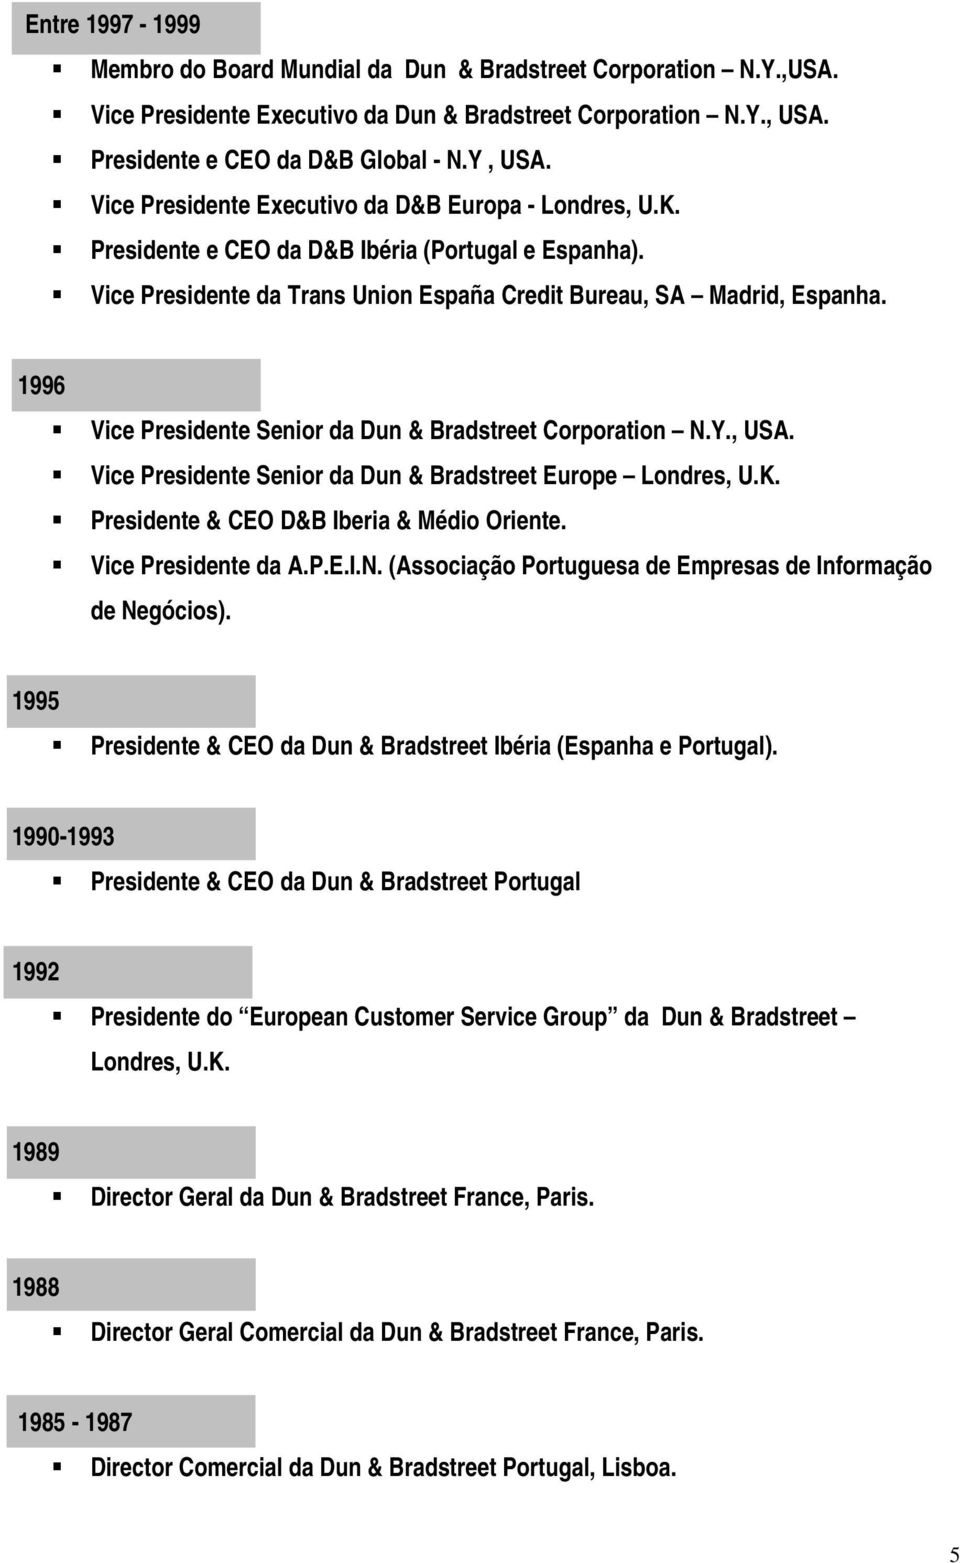 1996 Vice Presidente Senior da Dun & Bradstreet Corporation N.Y., USA. Vice Presidente Senior da Dun & Bradstreet Europe Londres, U.K. Presidente & CEO D&B Iberia & Médio Oriente.